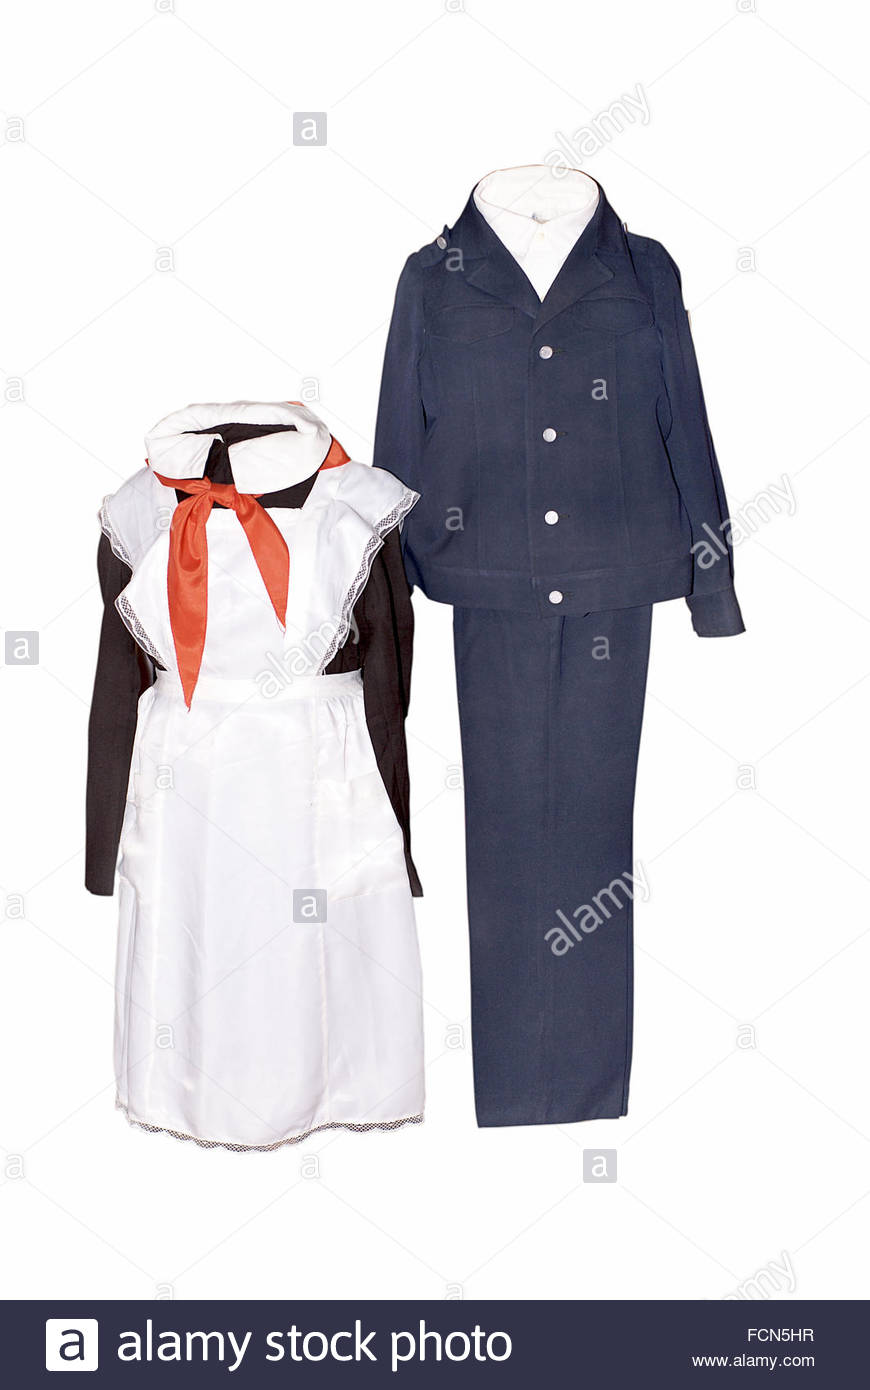 Soviet union school uniform with red Young Pioneer neckerchief. Former USSR - Stock Image